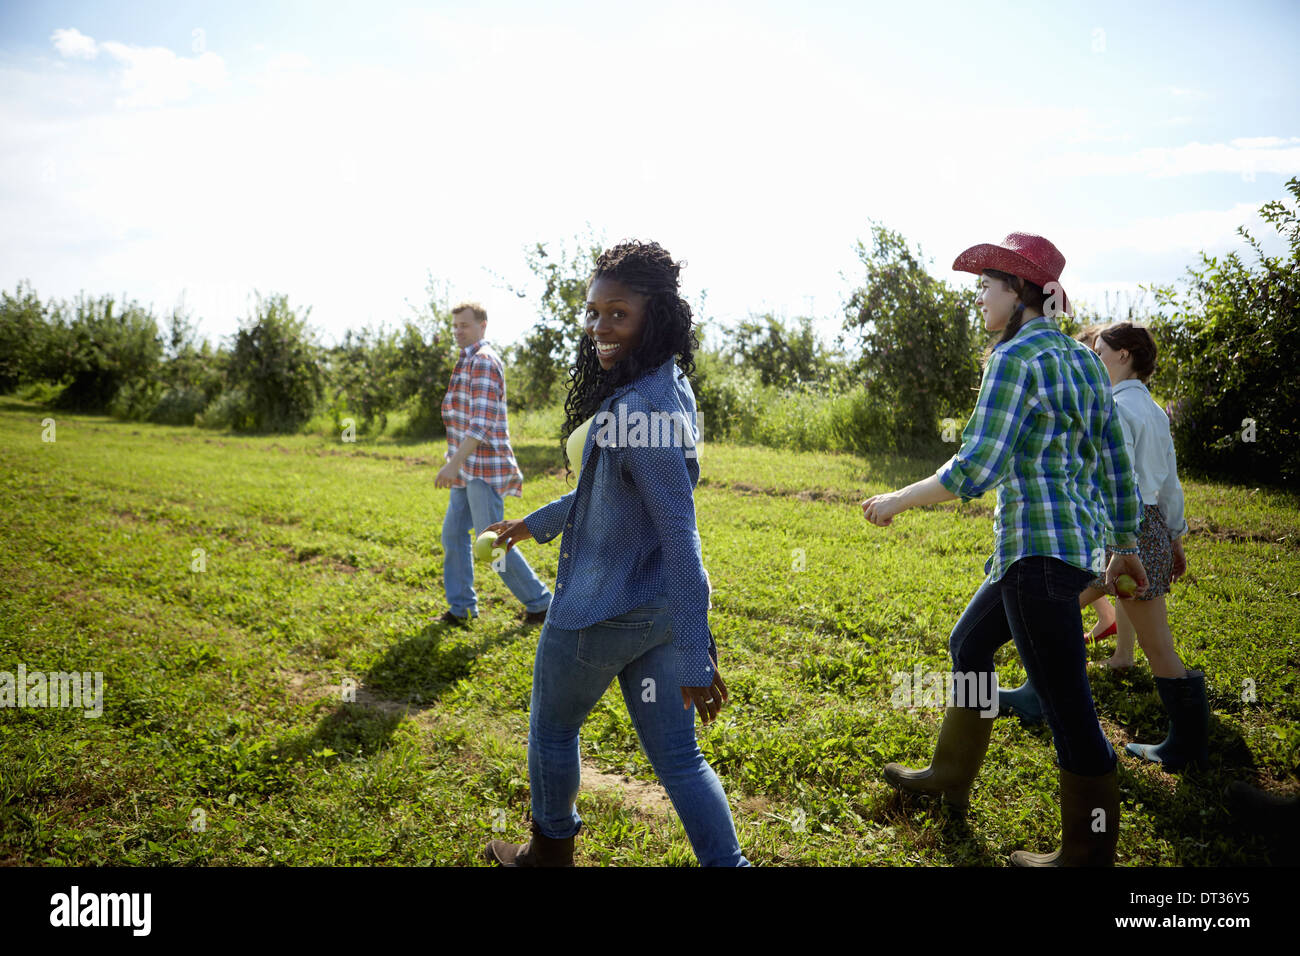 A group of young men and women in the fields of an organic farm - Stock Image